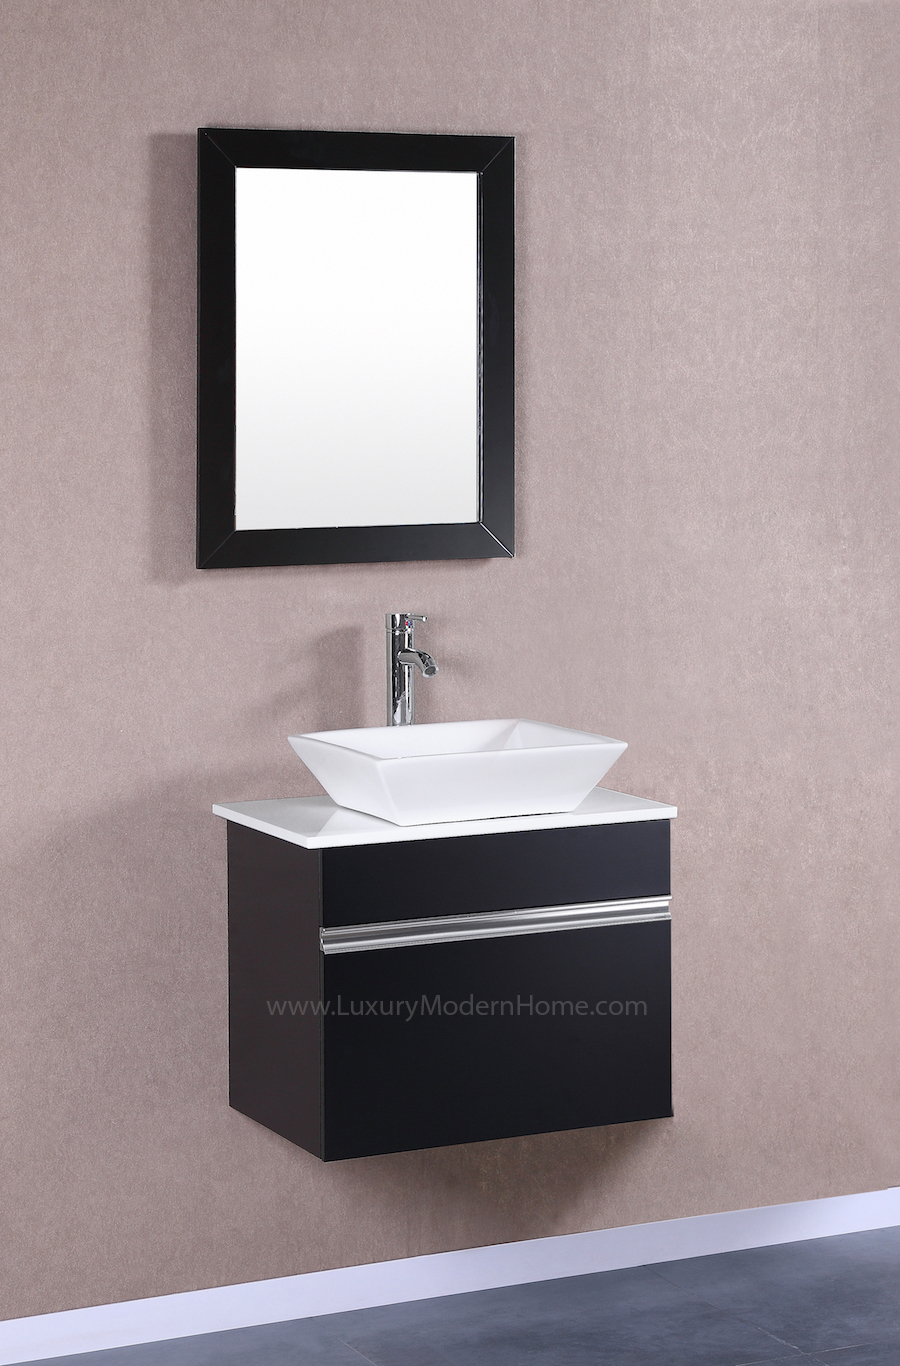 MARCUS 24 Small Black Vanity Sink